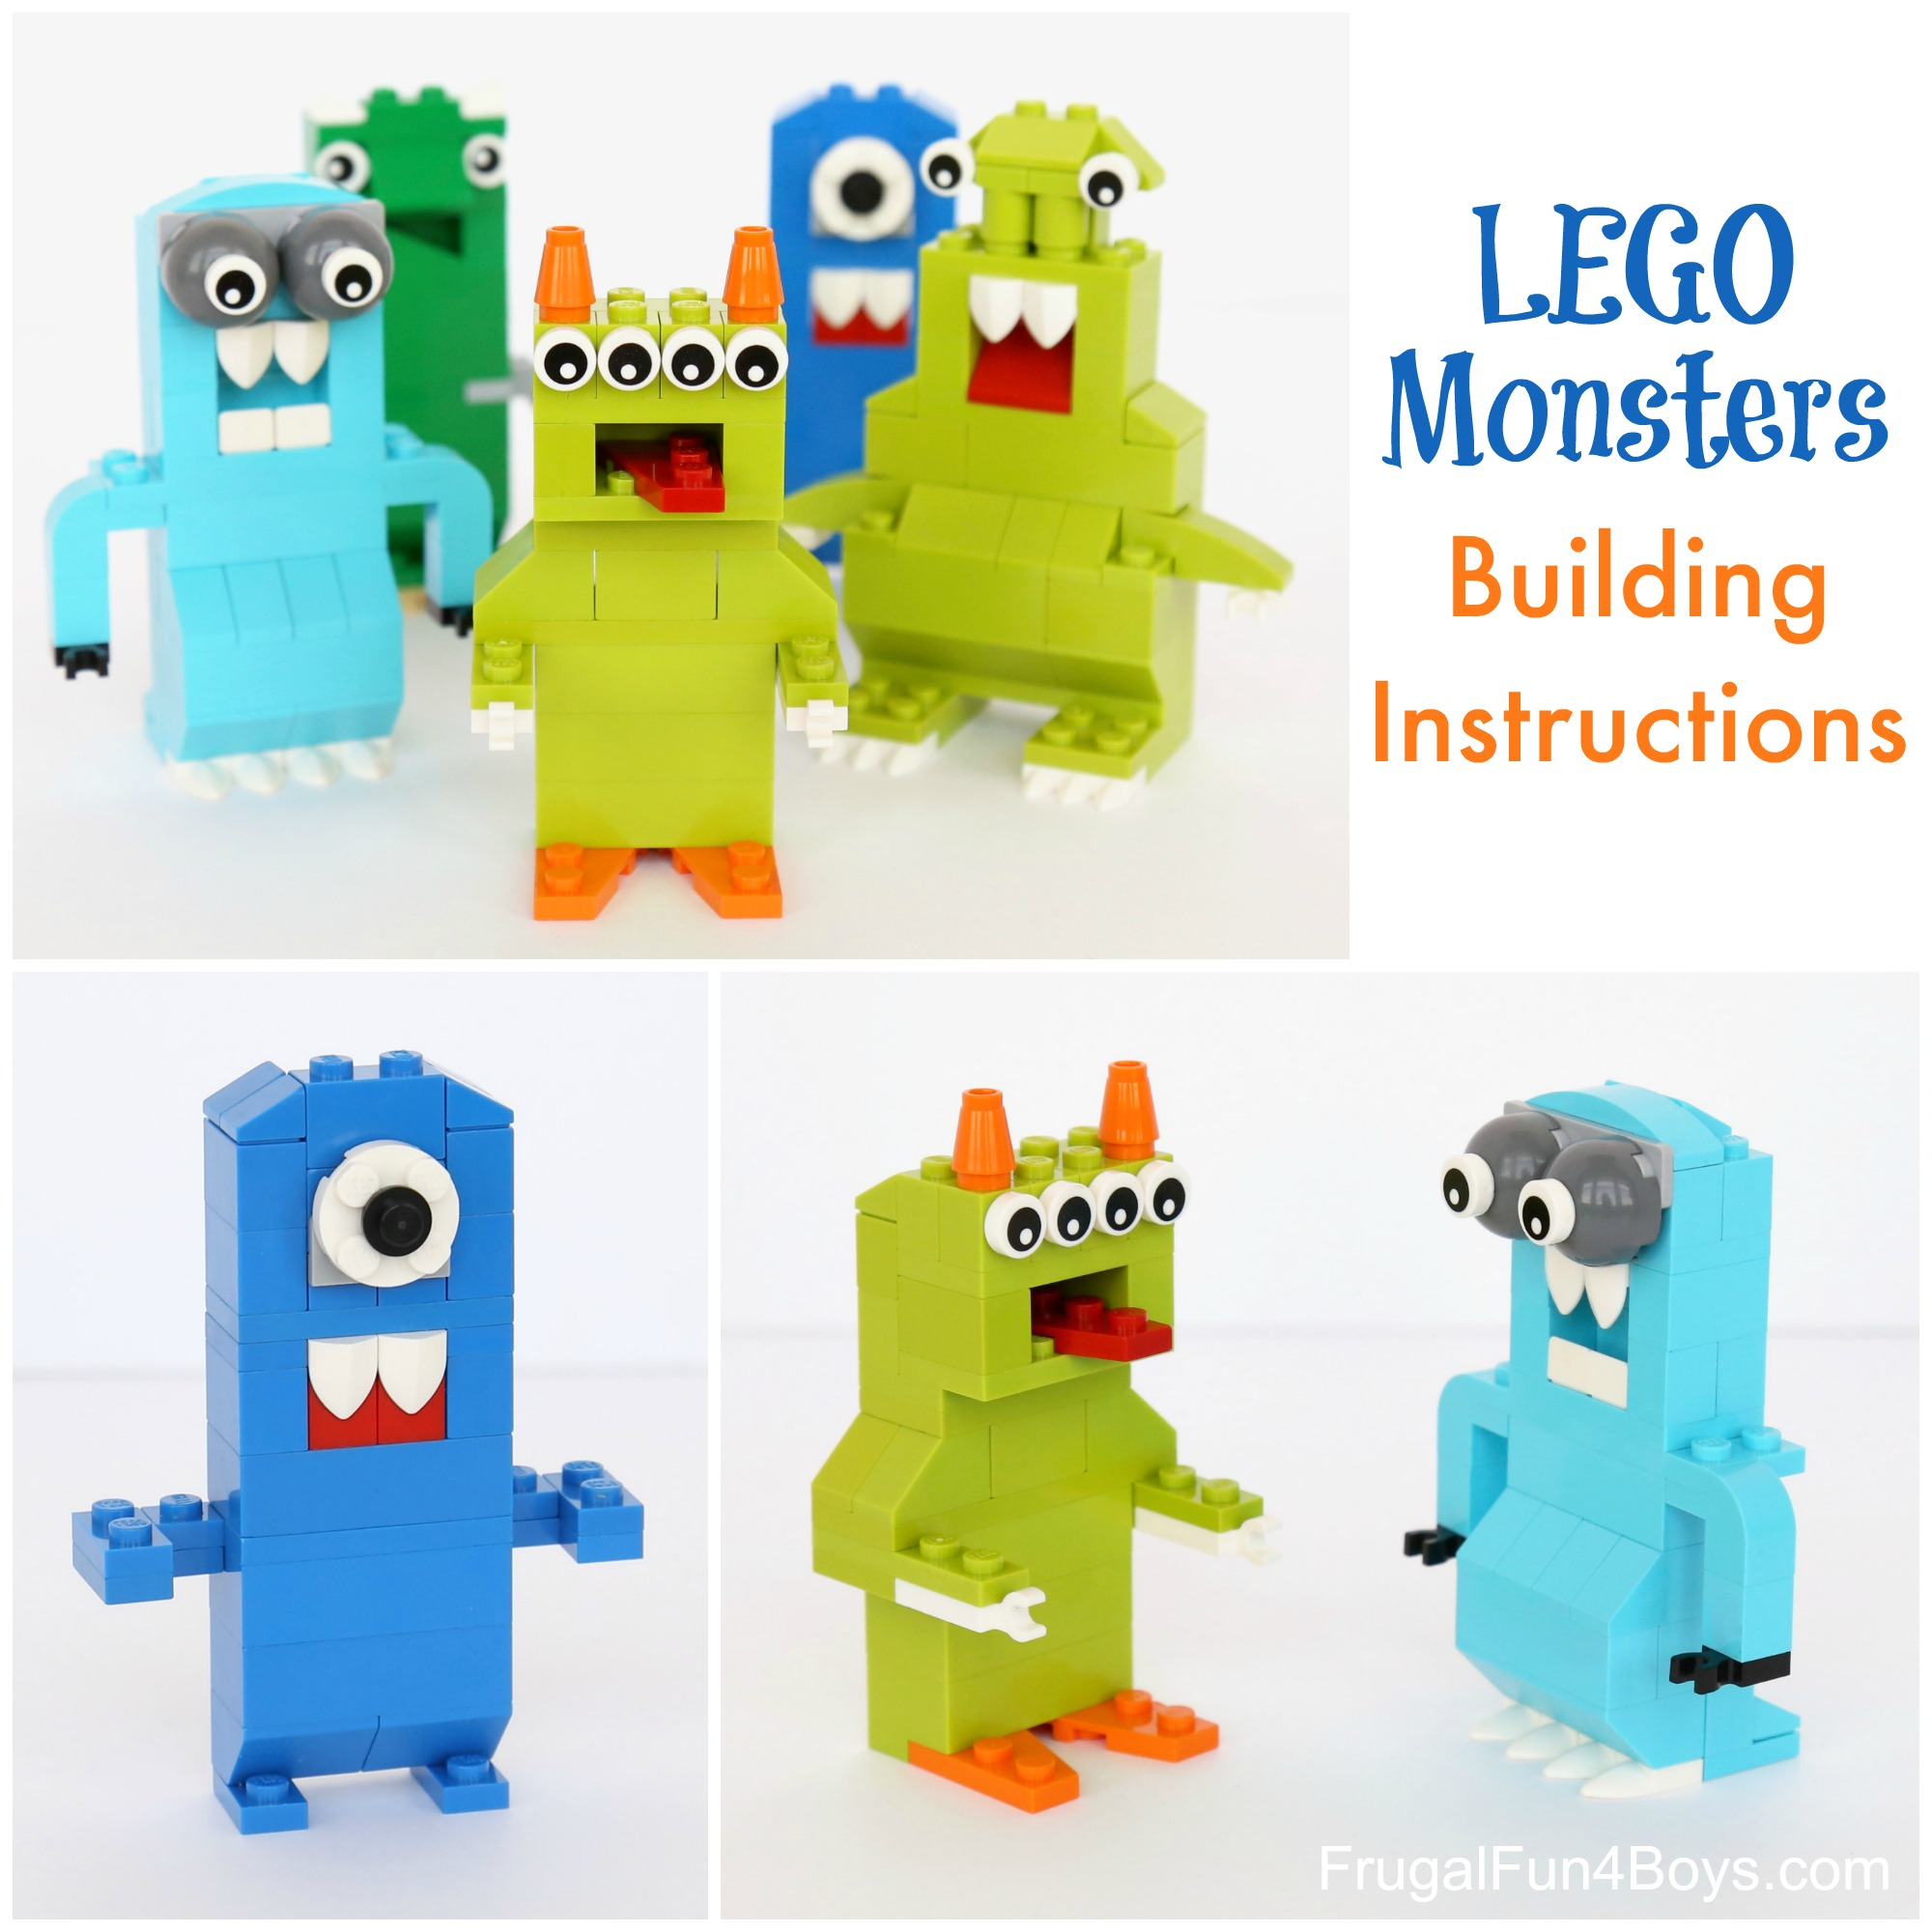 Small Lego monster creations.